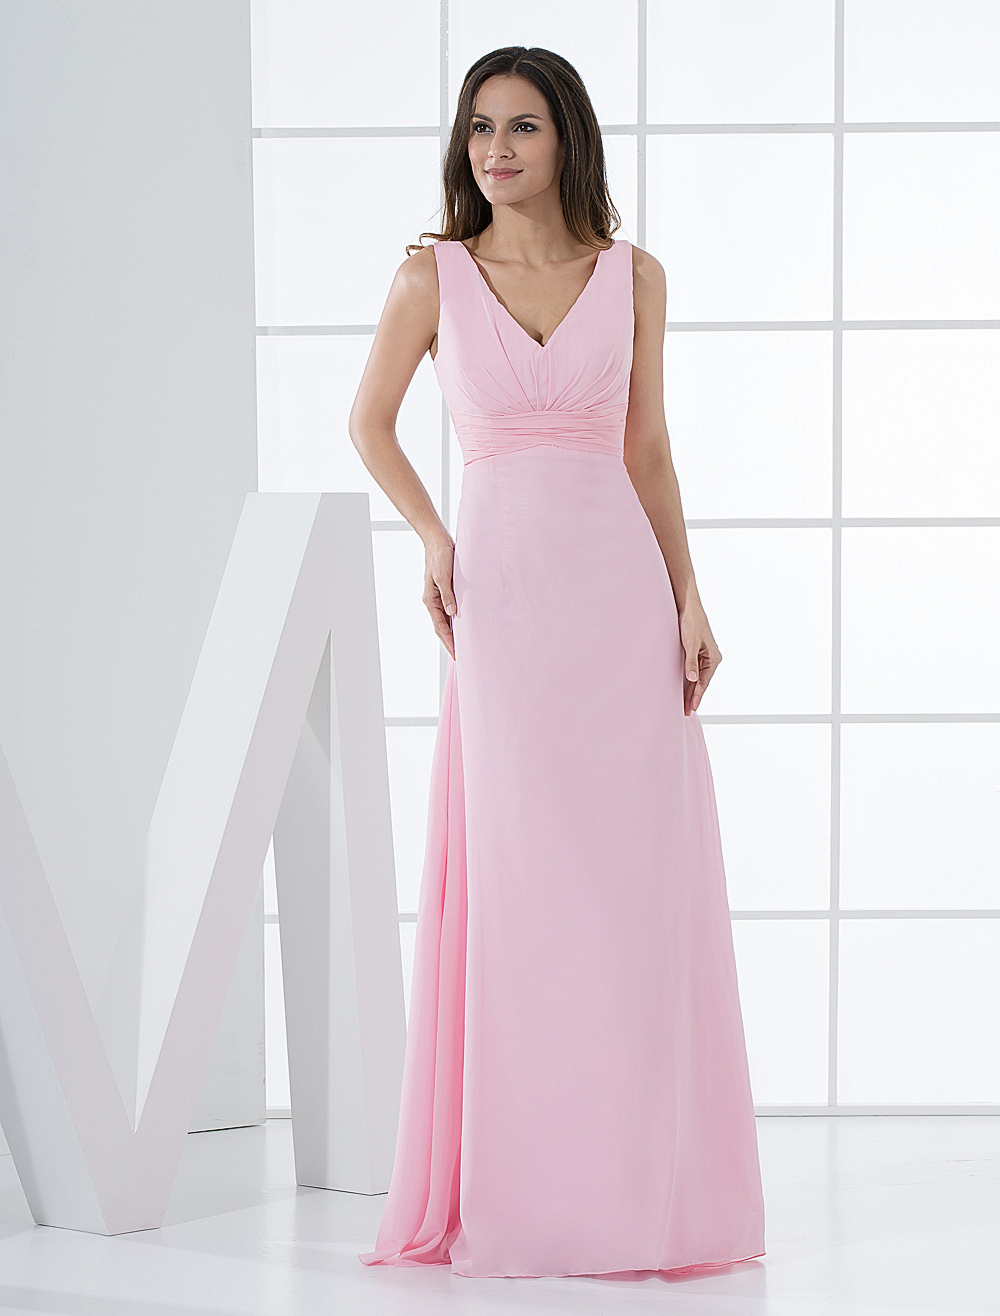 V-Neck Chiffon Empire Waist Bridesmaid Dress